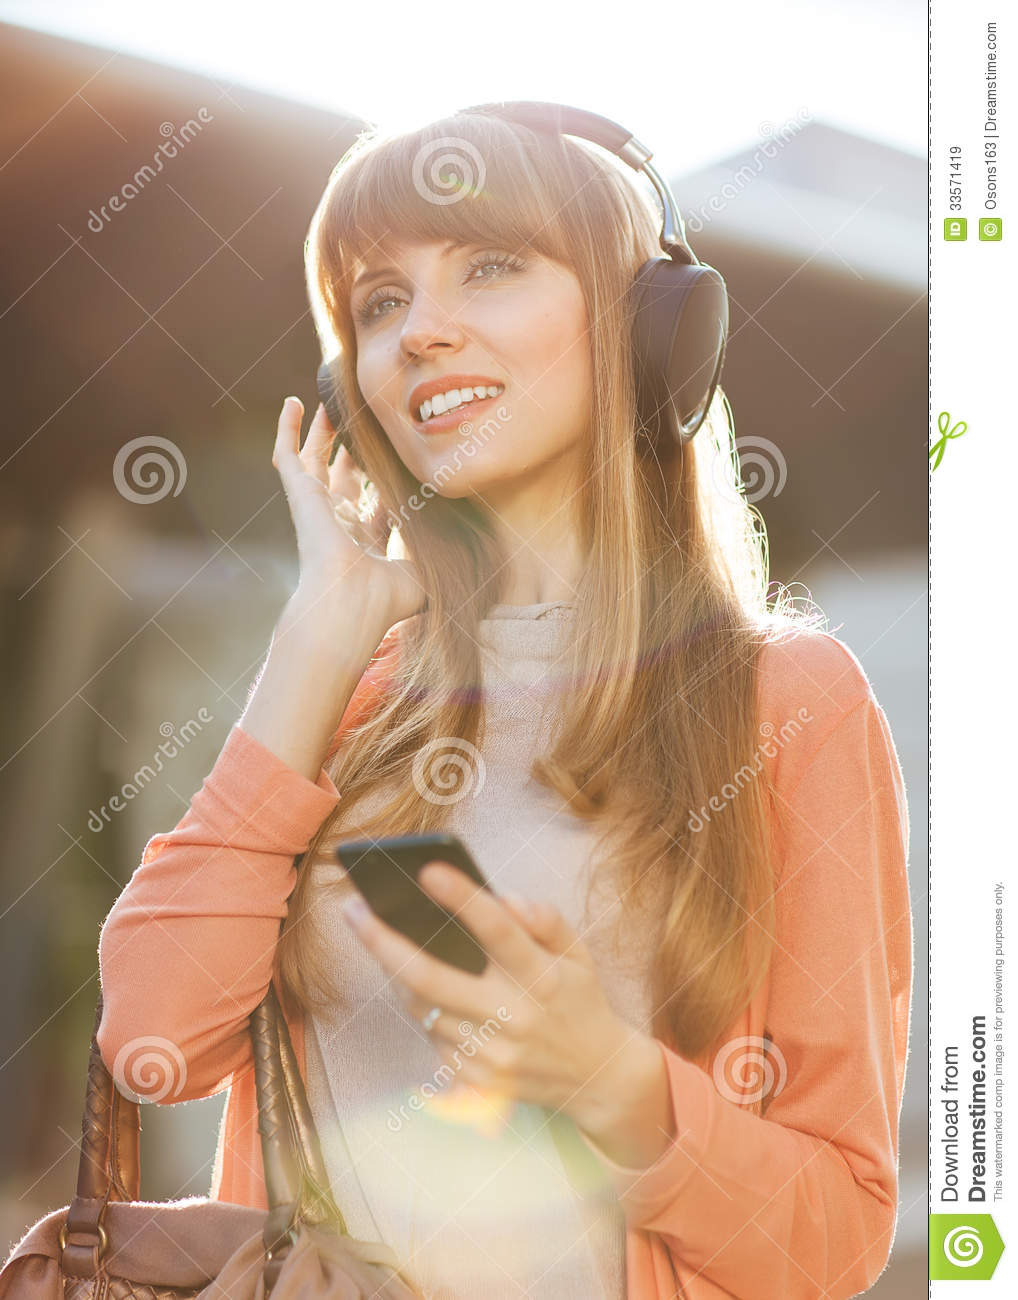 Beautiful girls all over the world mp3